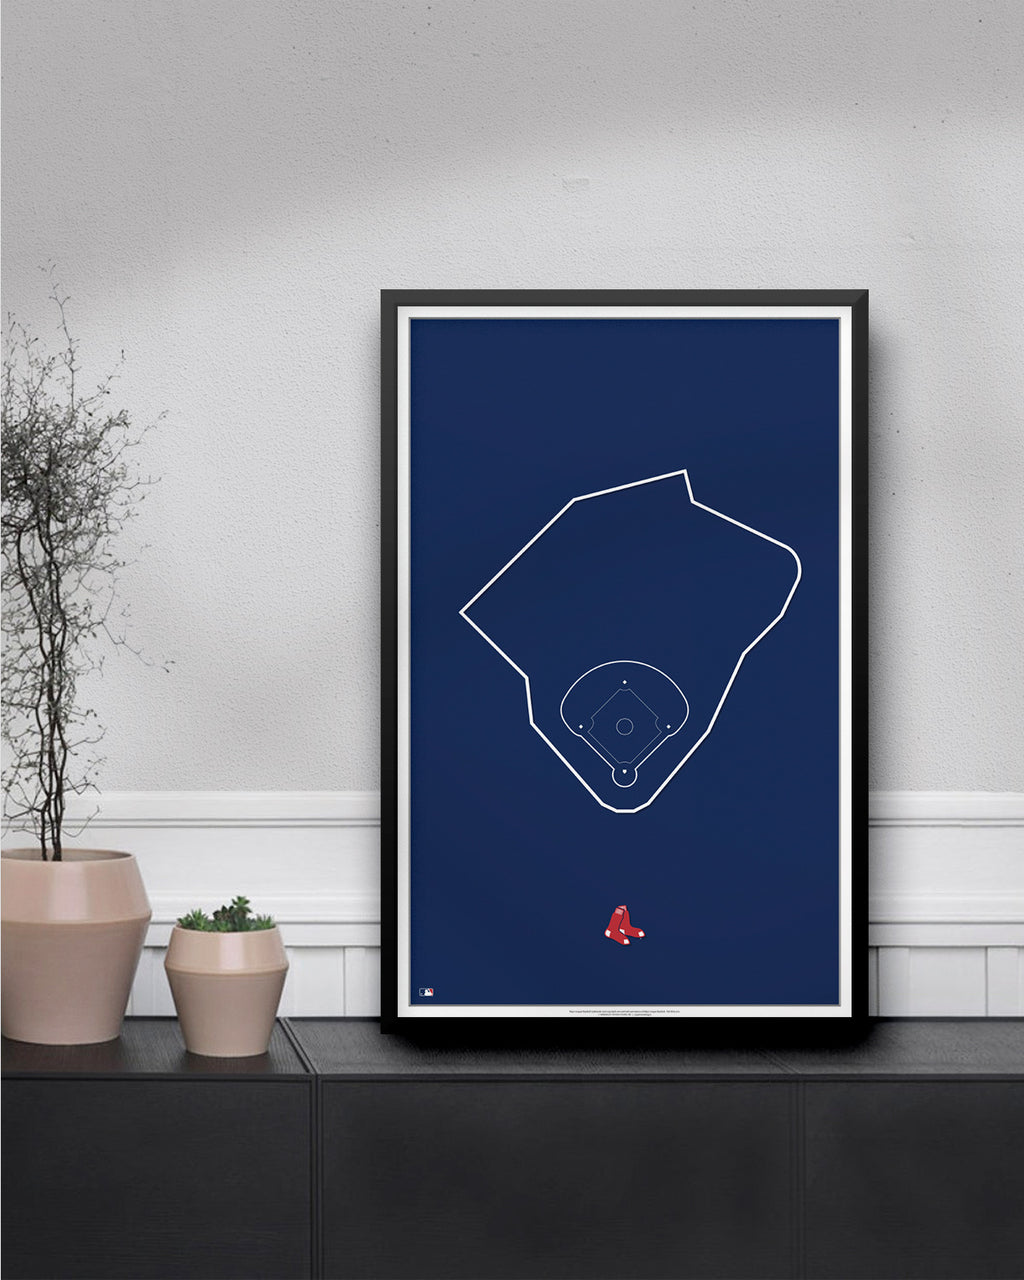 MLB Outline Ballpark - Fenway Park Boston Red Sox - S Preston